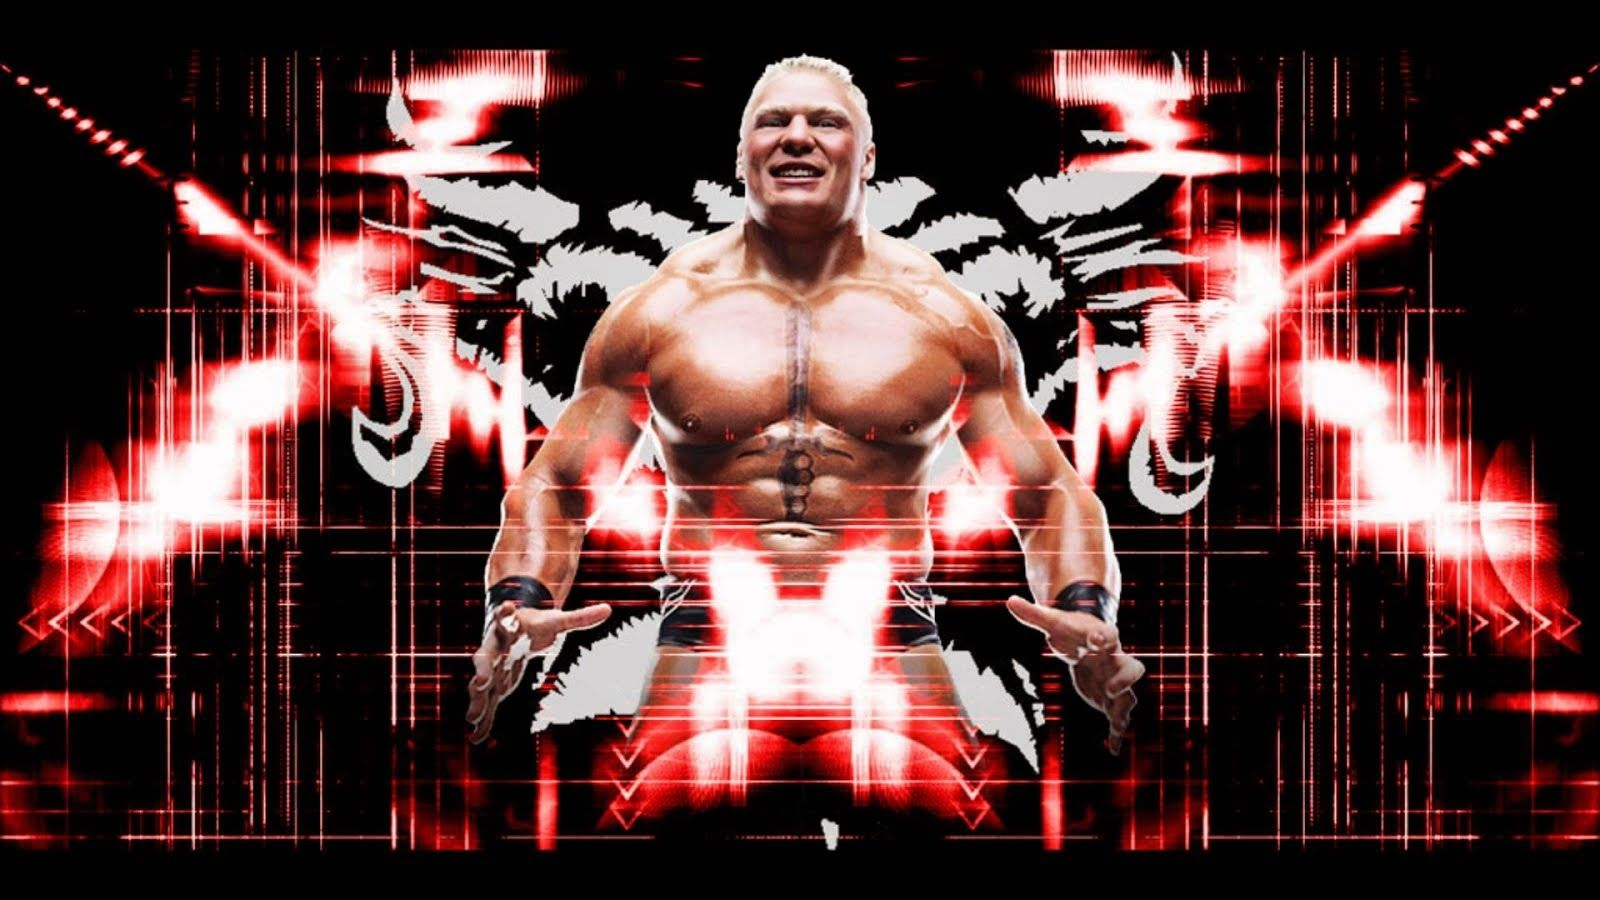 wwe brock lesnar 2015 hd wallpaper wallpapersafari all